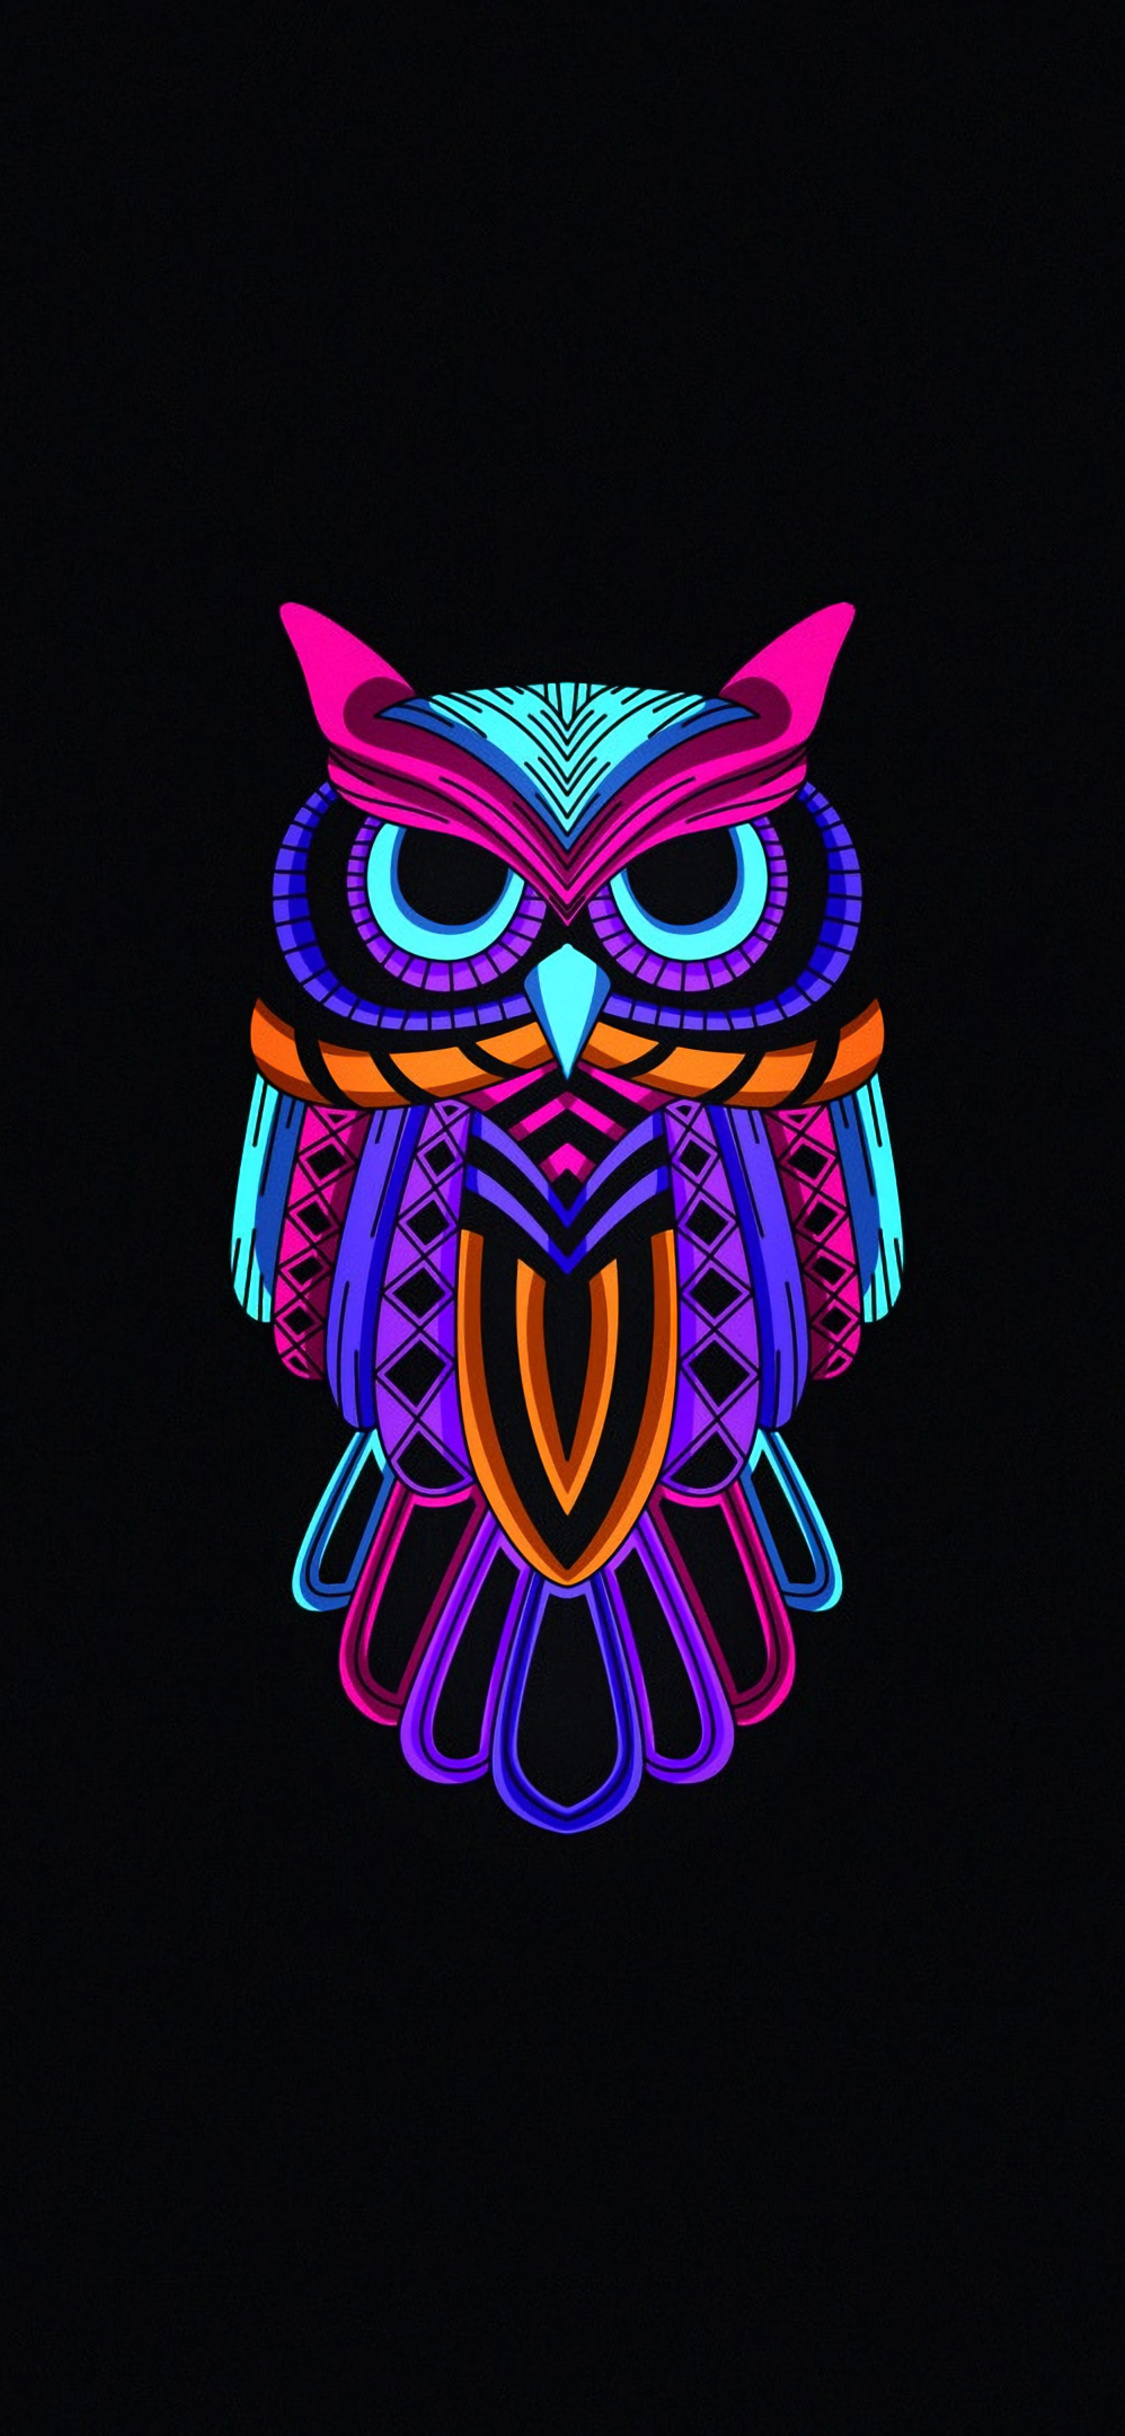 1125x2436 Owl Minimal Dark 4k Iphone Xs Iphone 10 Iphone X Hd 4k Wallpapers Images Backgrounds Photos And Pictures